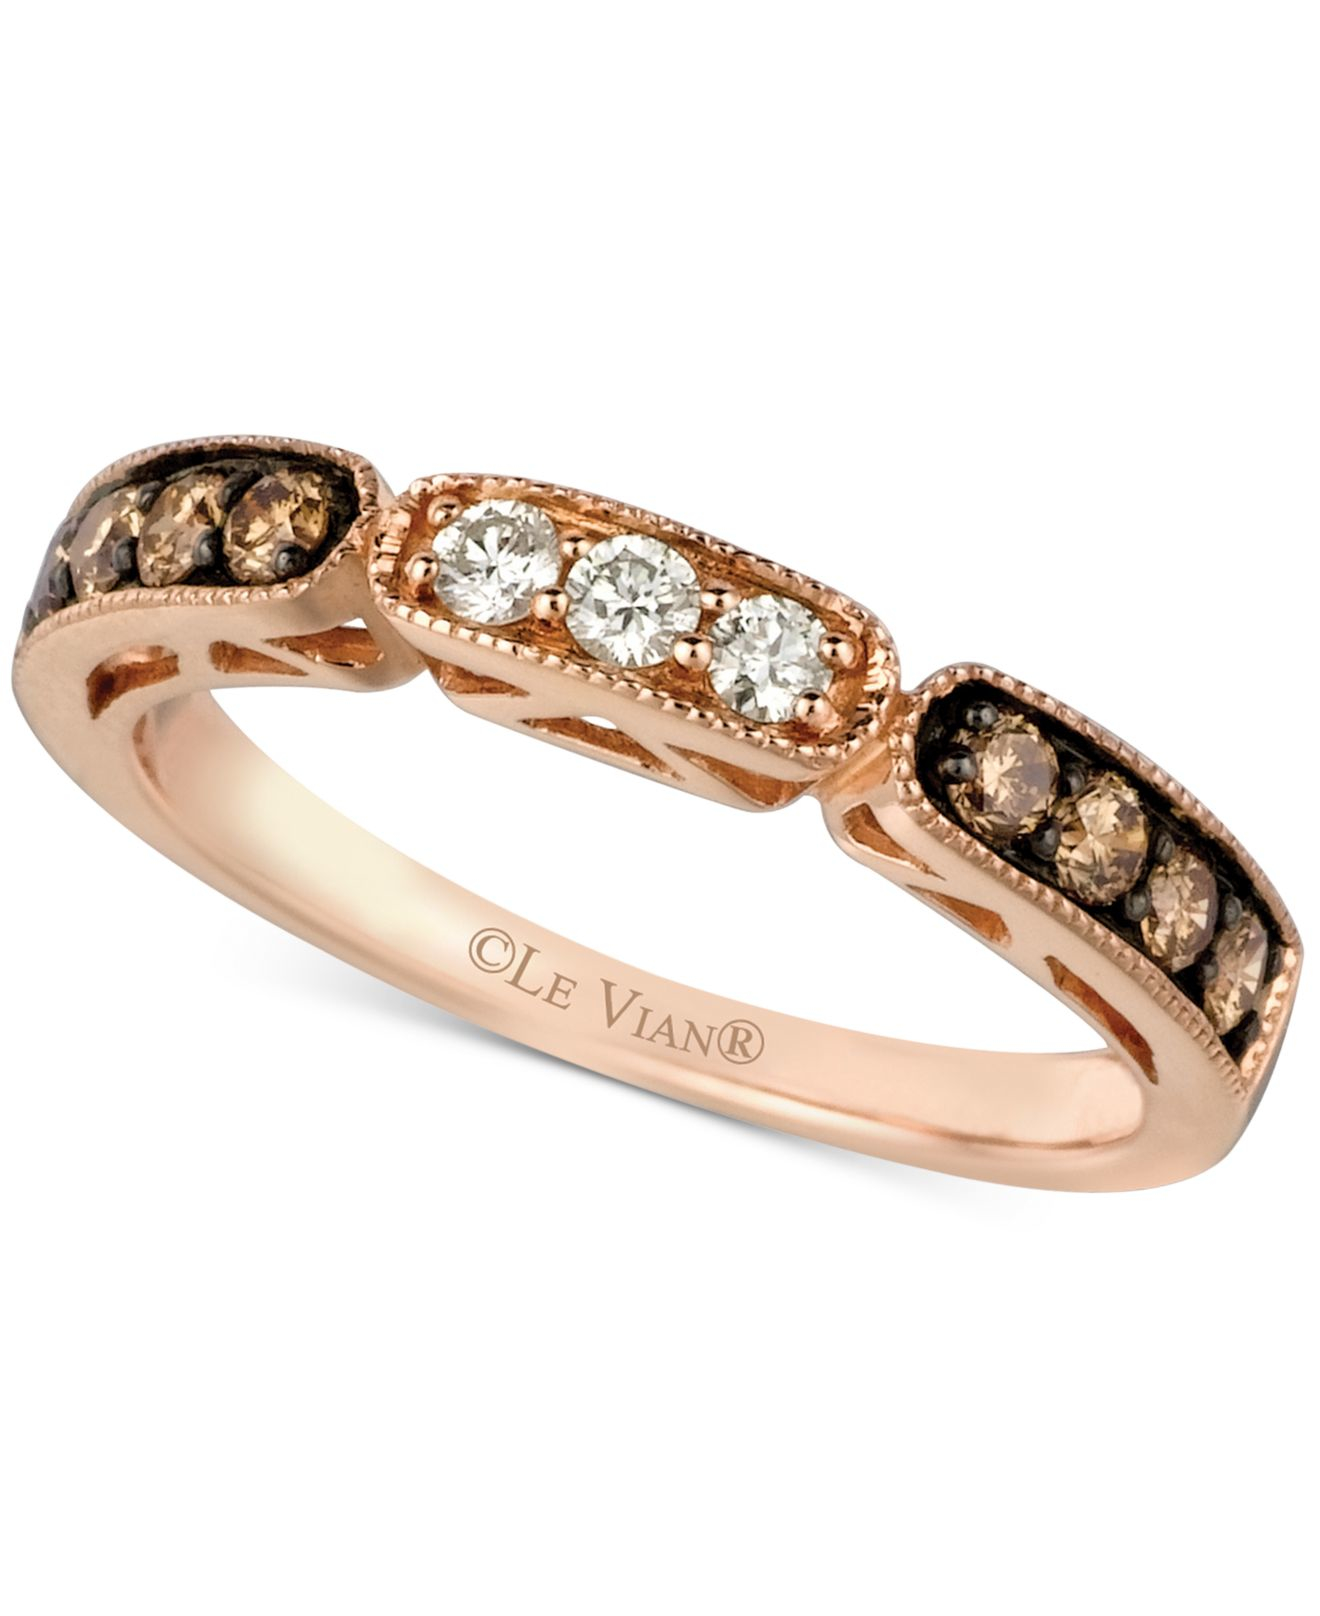 Le vian Chocolate And White Diamond Band In 14k Rose Gold 3 8 Ct